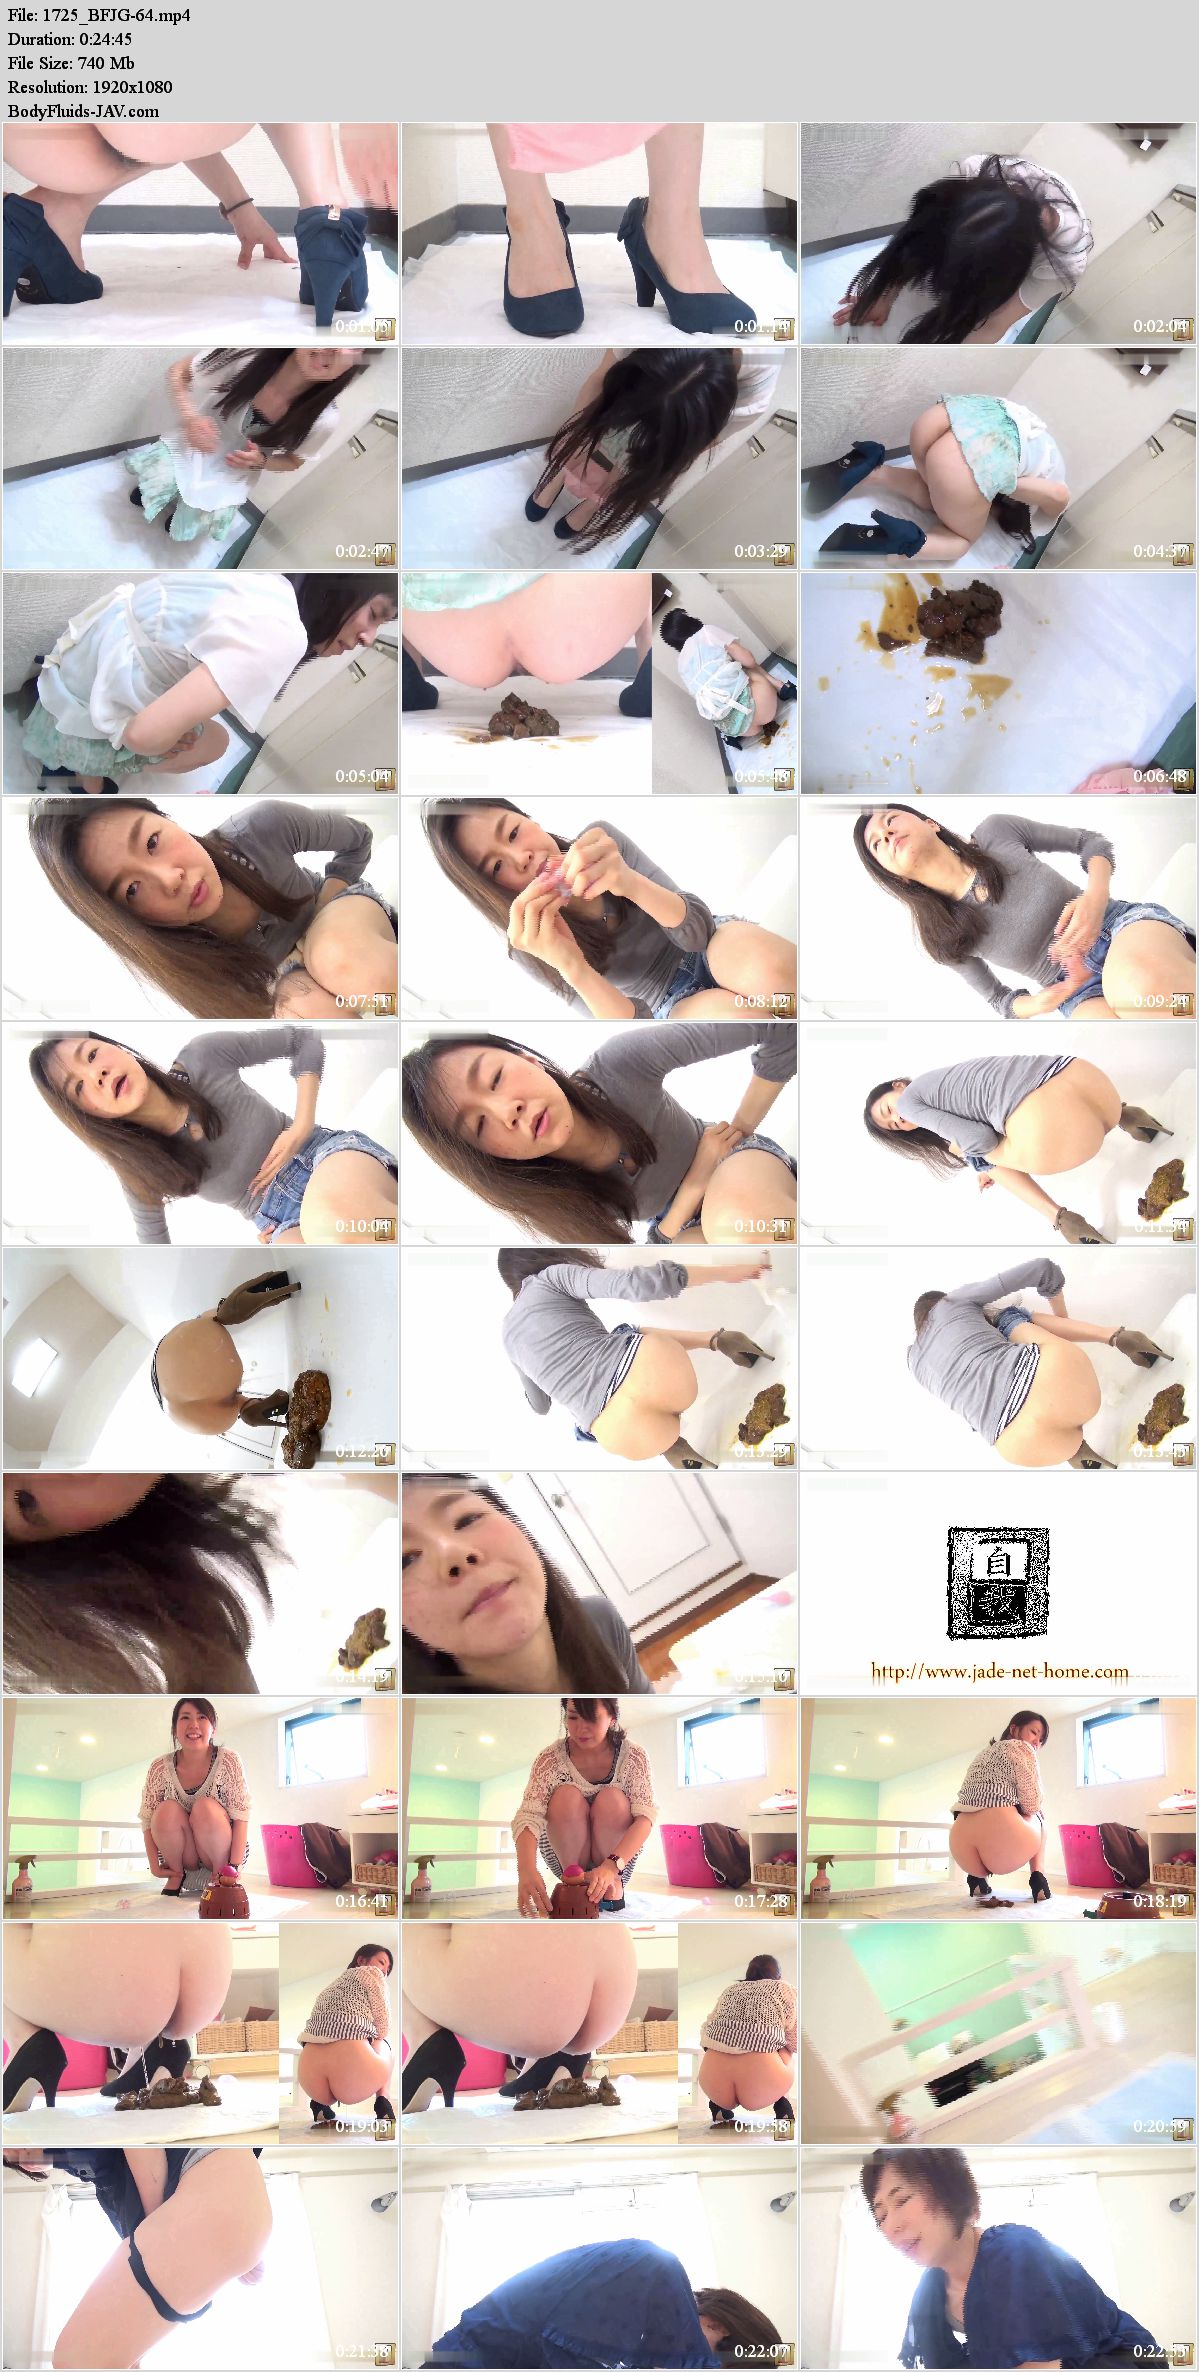 BFJG-64 Powerful defecation after enema. (HD 1080p)